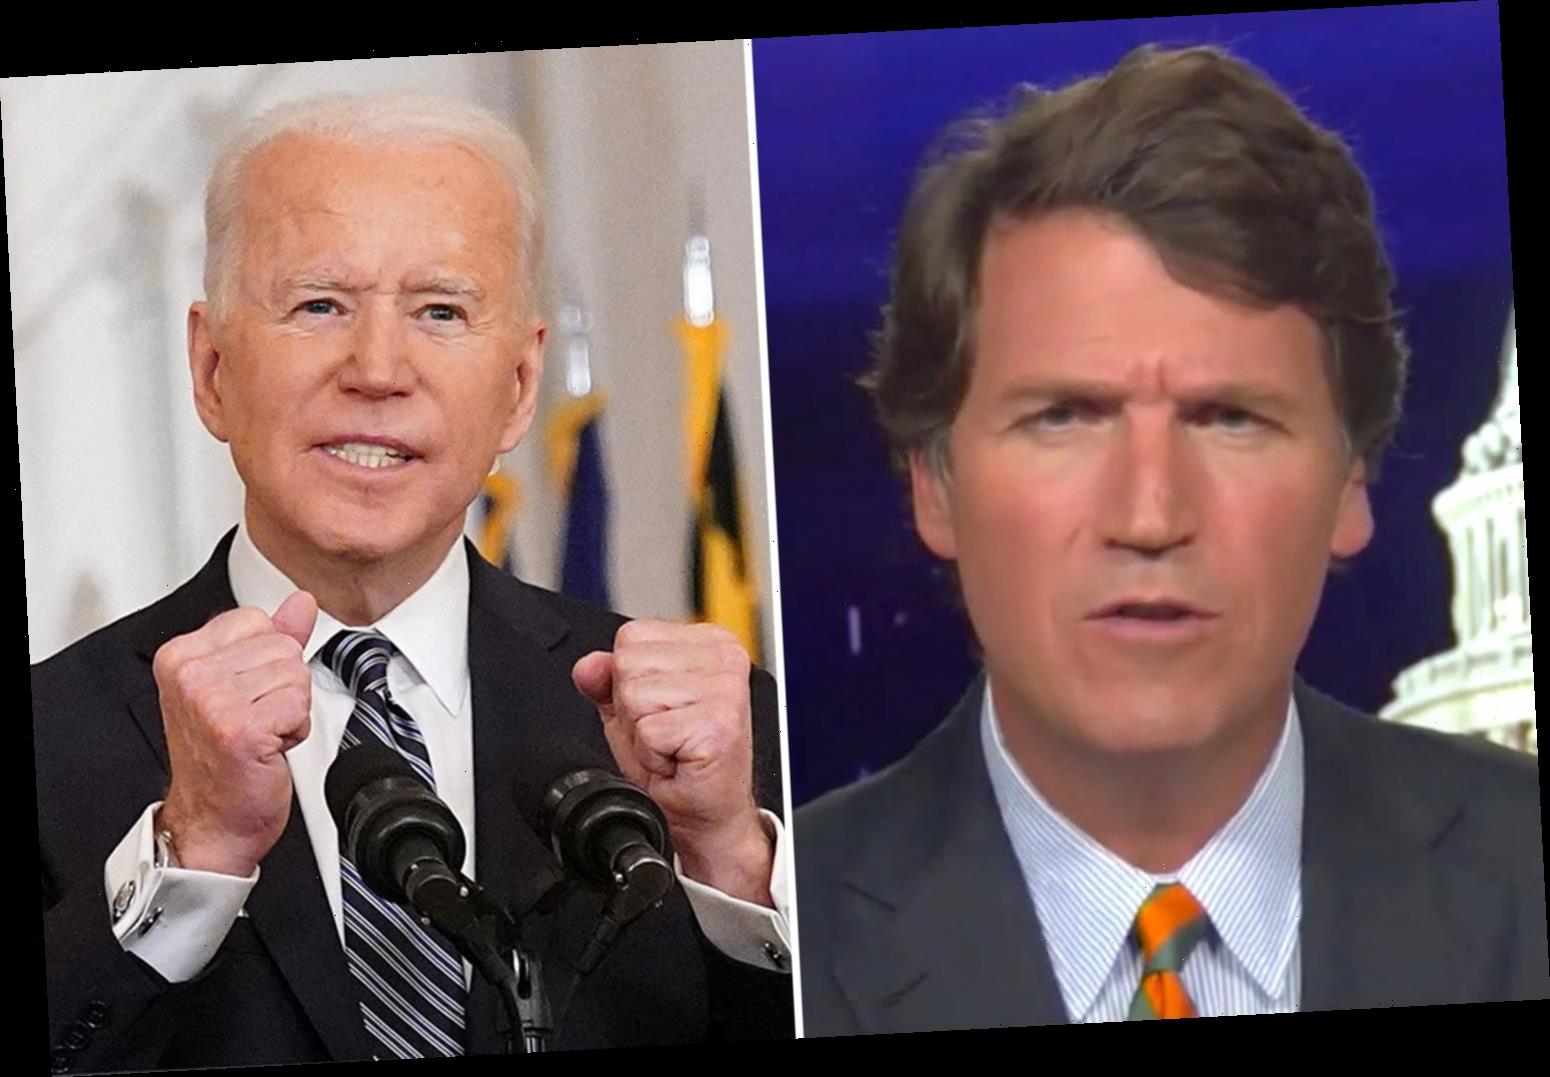 Tucker Carlson slams Biden's plan for 'normal' July 4th and says 'how dare you tell us who we can spend holidays with'